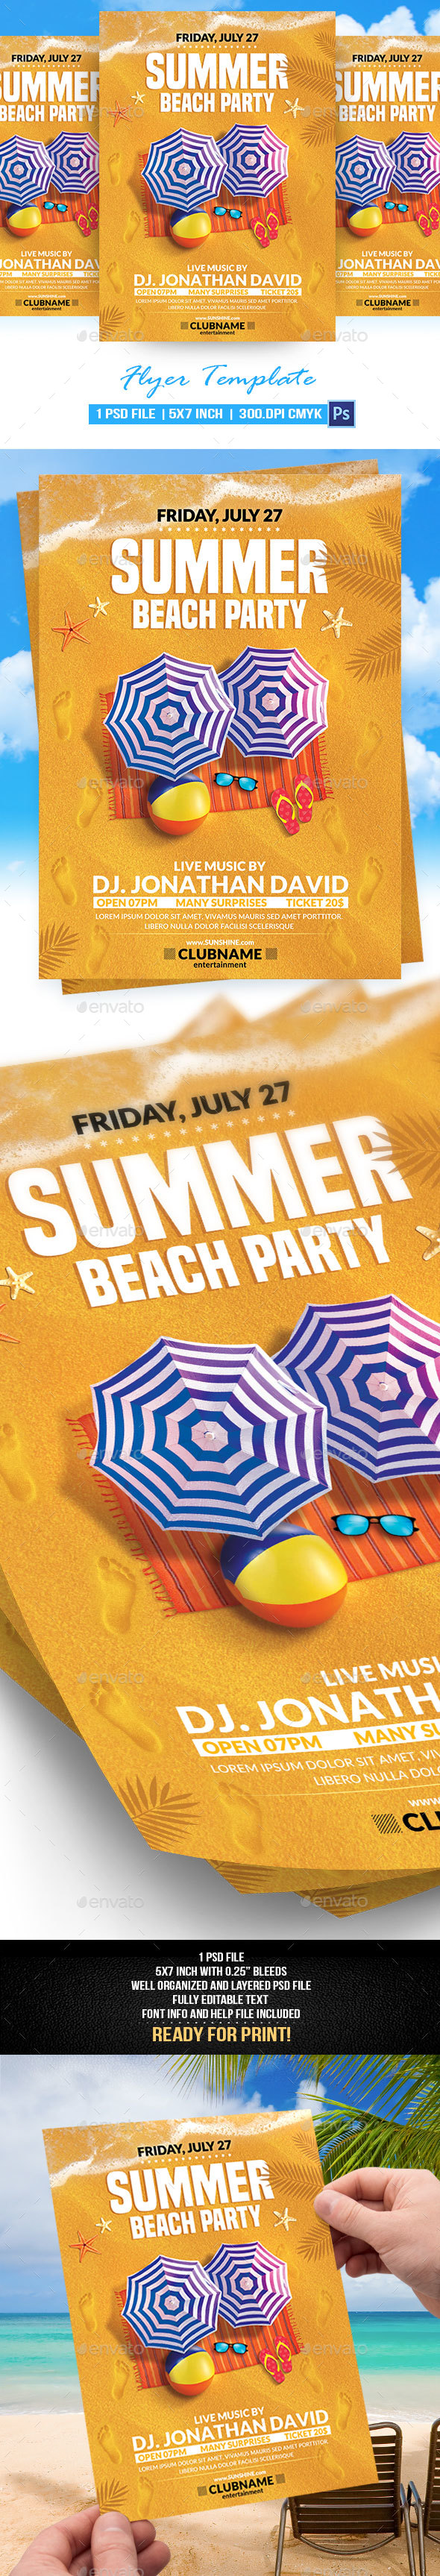 Summer Beach Party Flyer Template - Flyers Print Templates